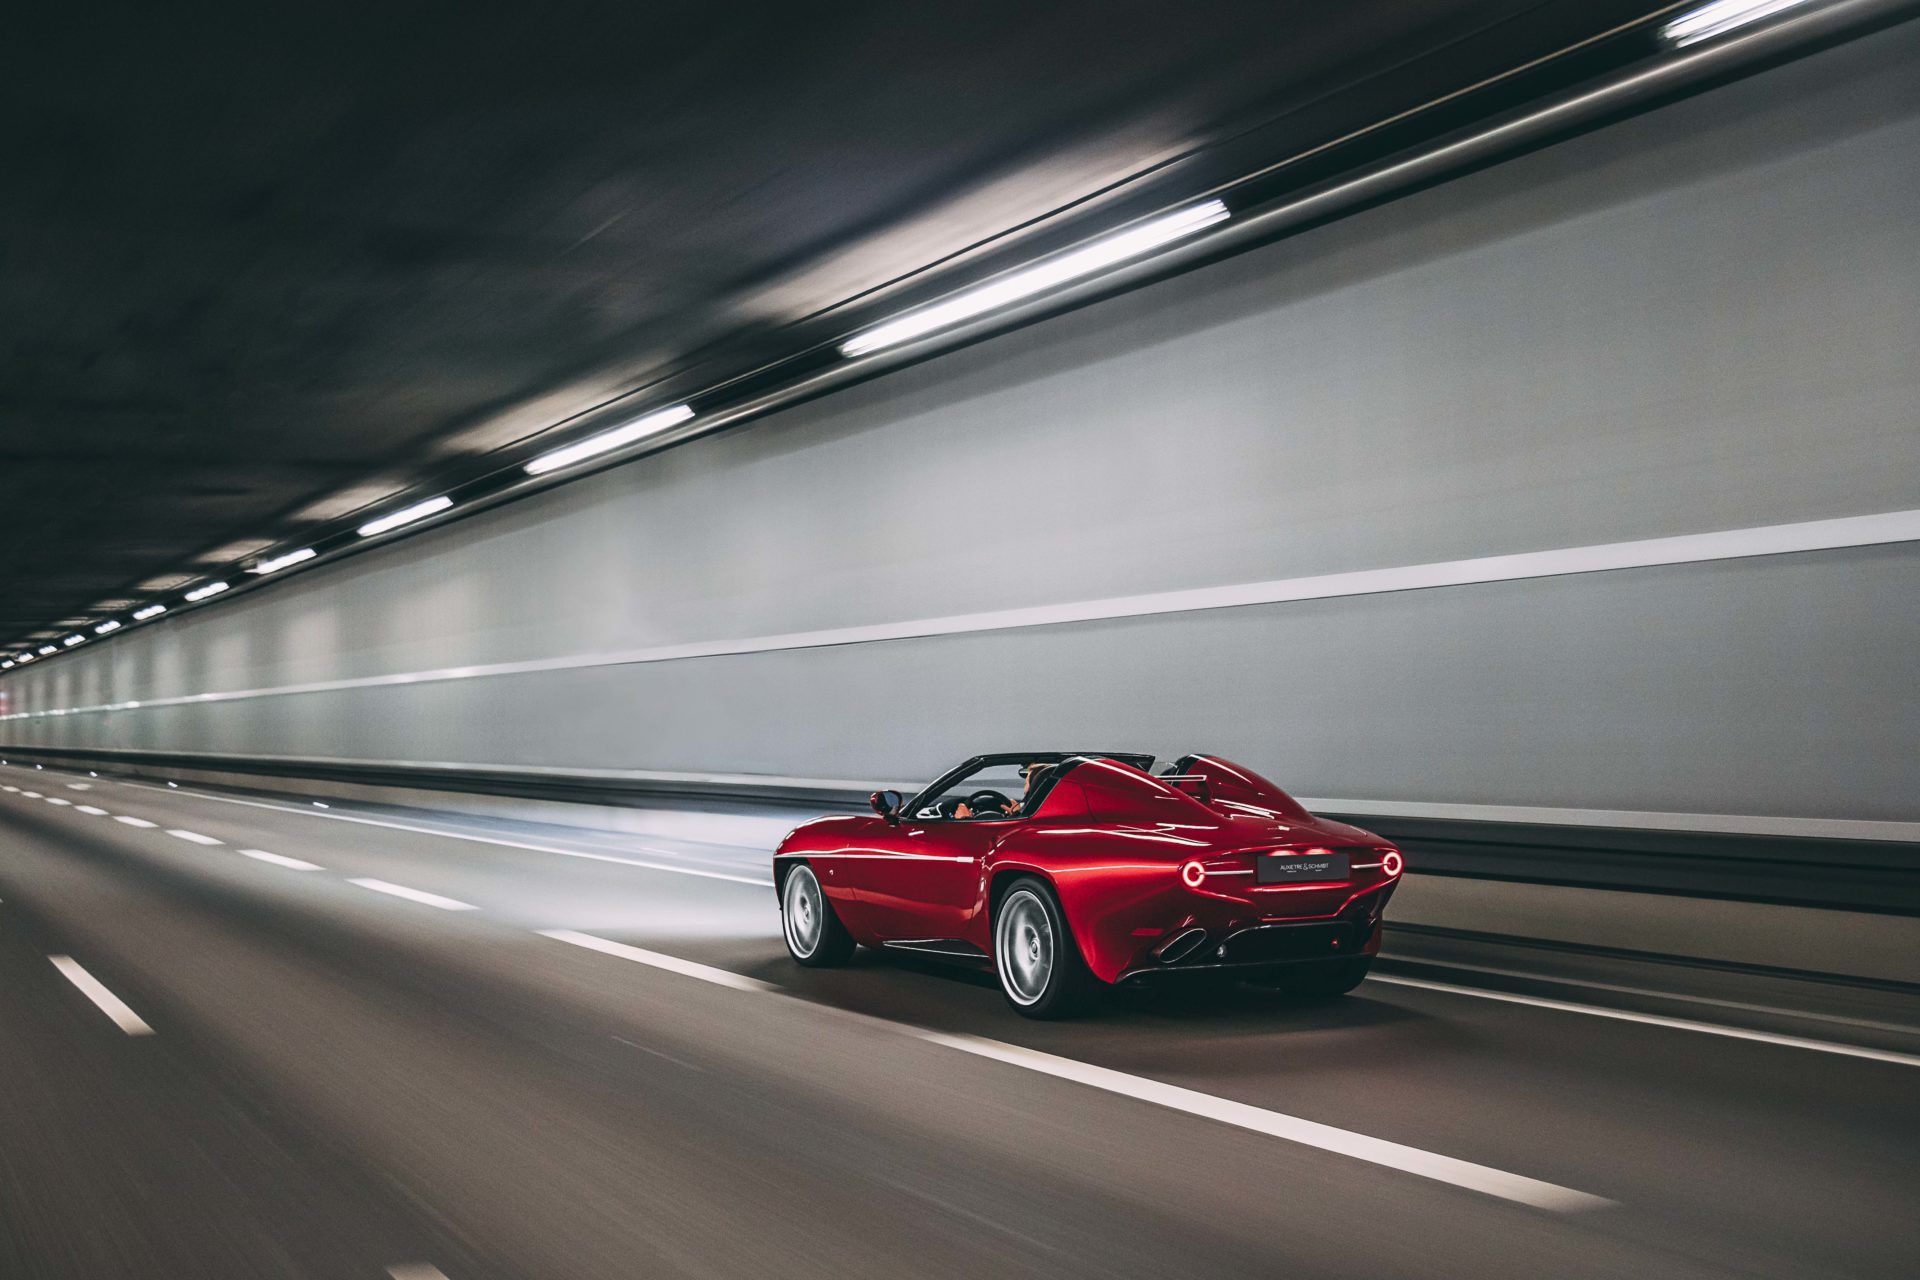 Alfa-Romeo-Disco-Volante-Spyder-for-sale-22